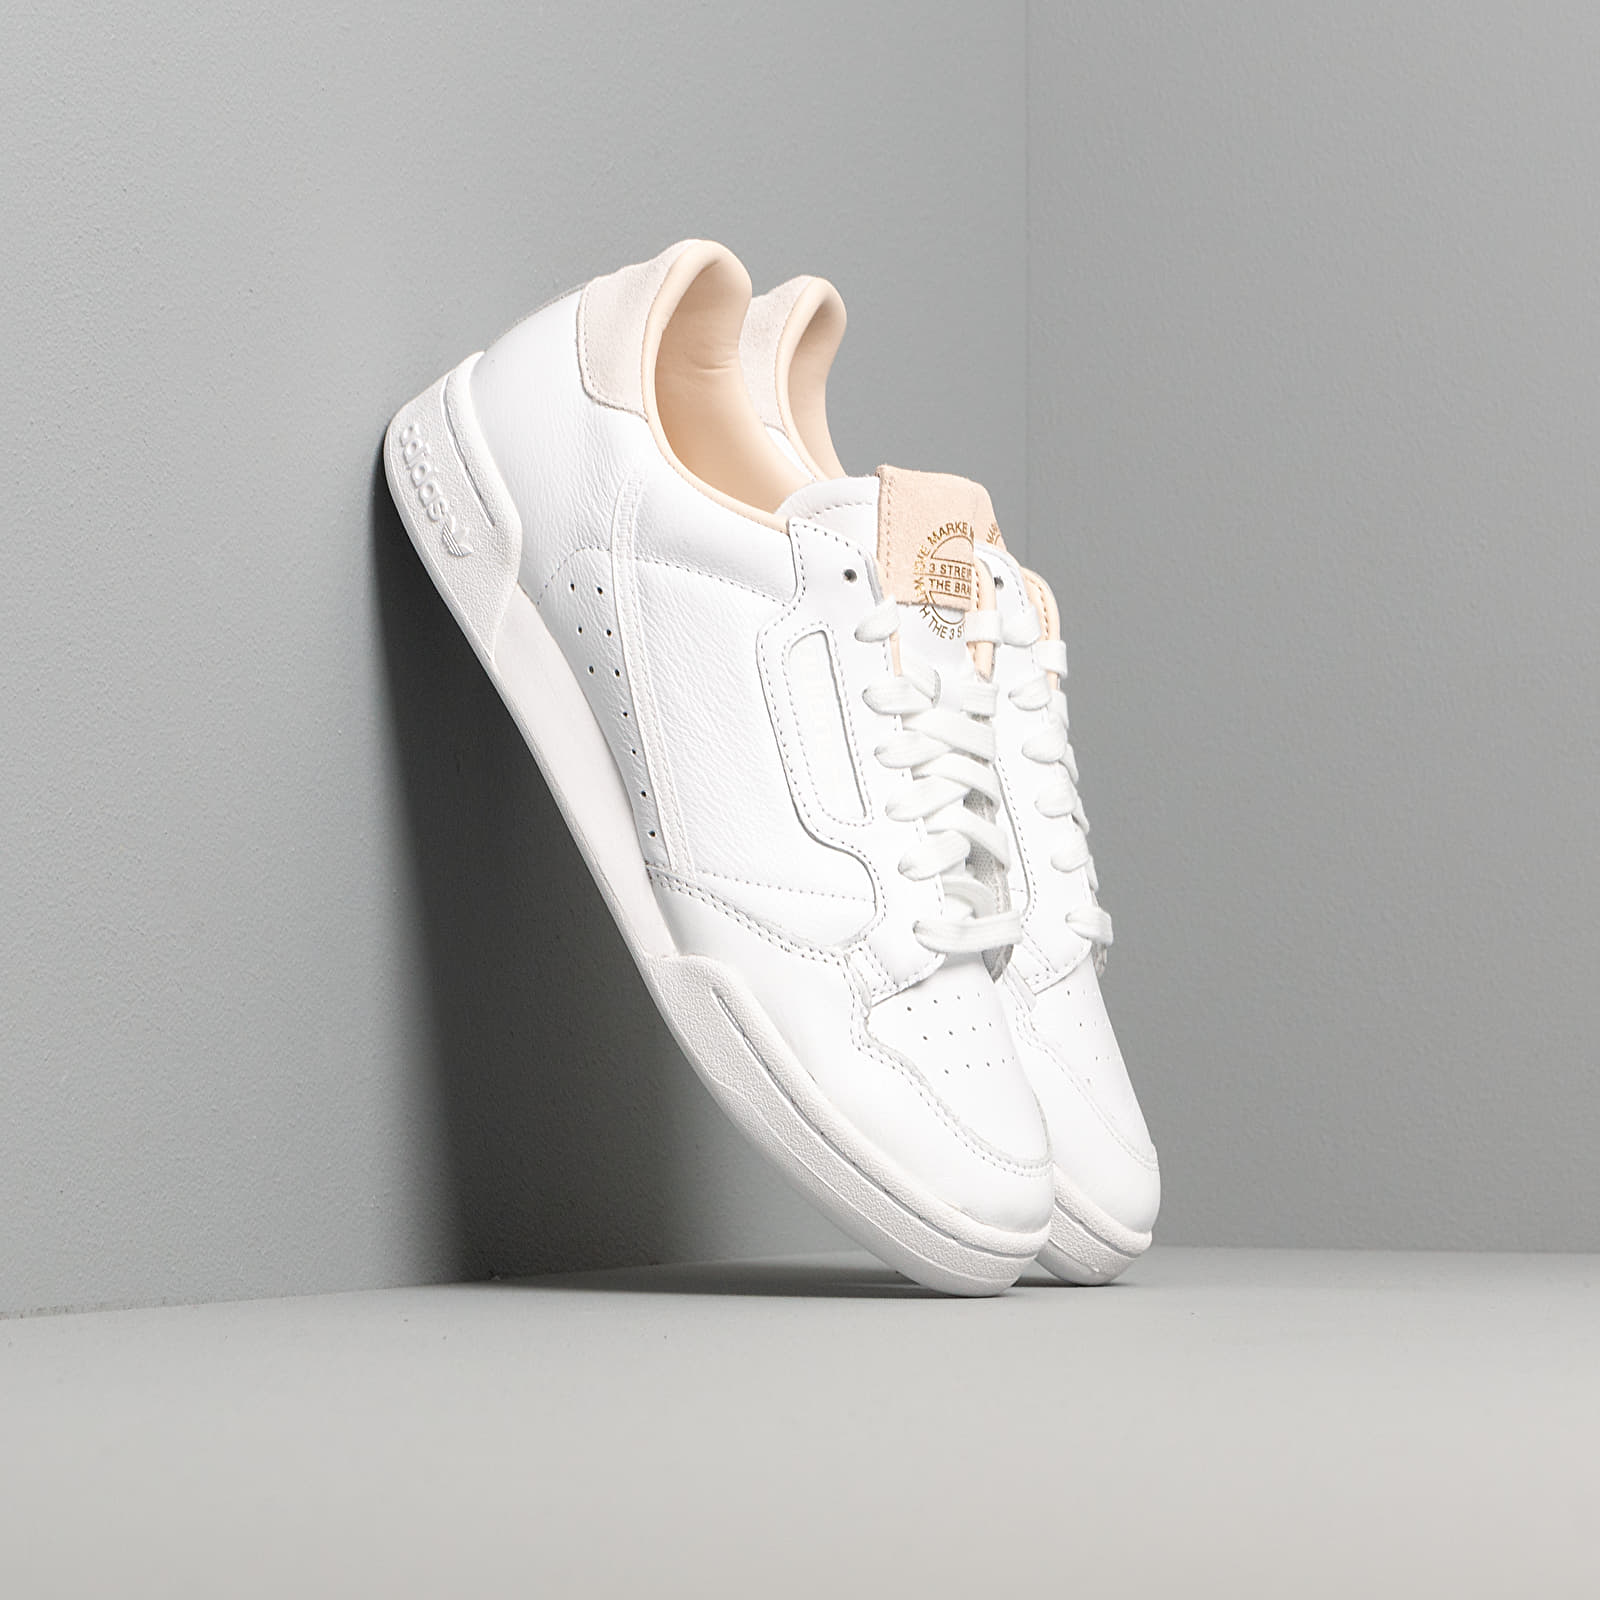 Men's shoes adidas Continental 80 Ftw White/ Ftw White/ Crystal White